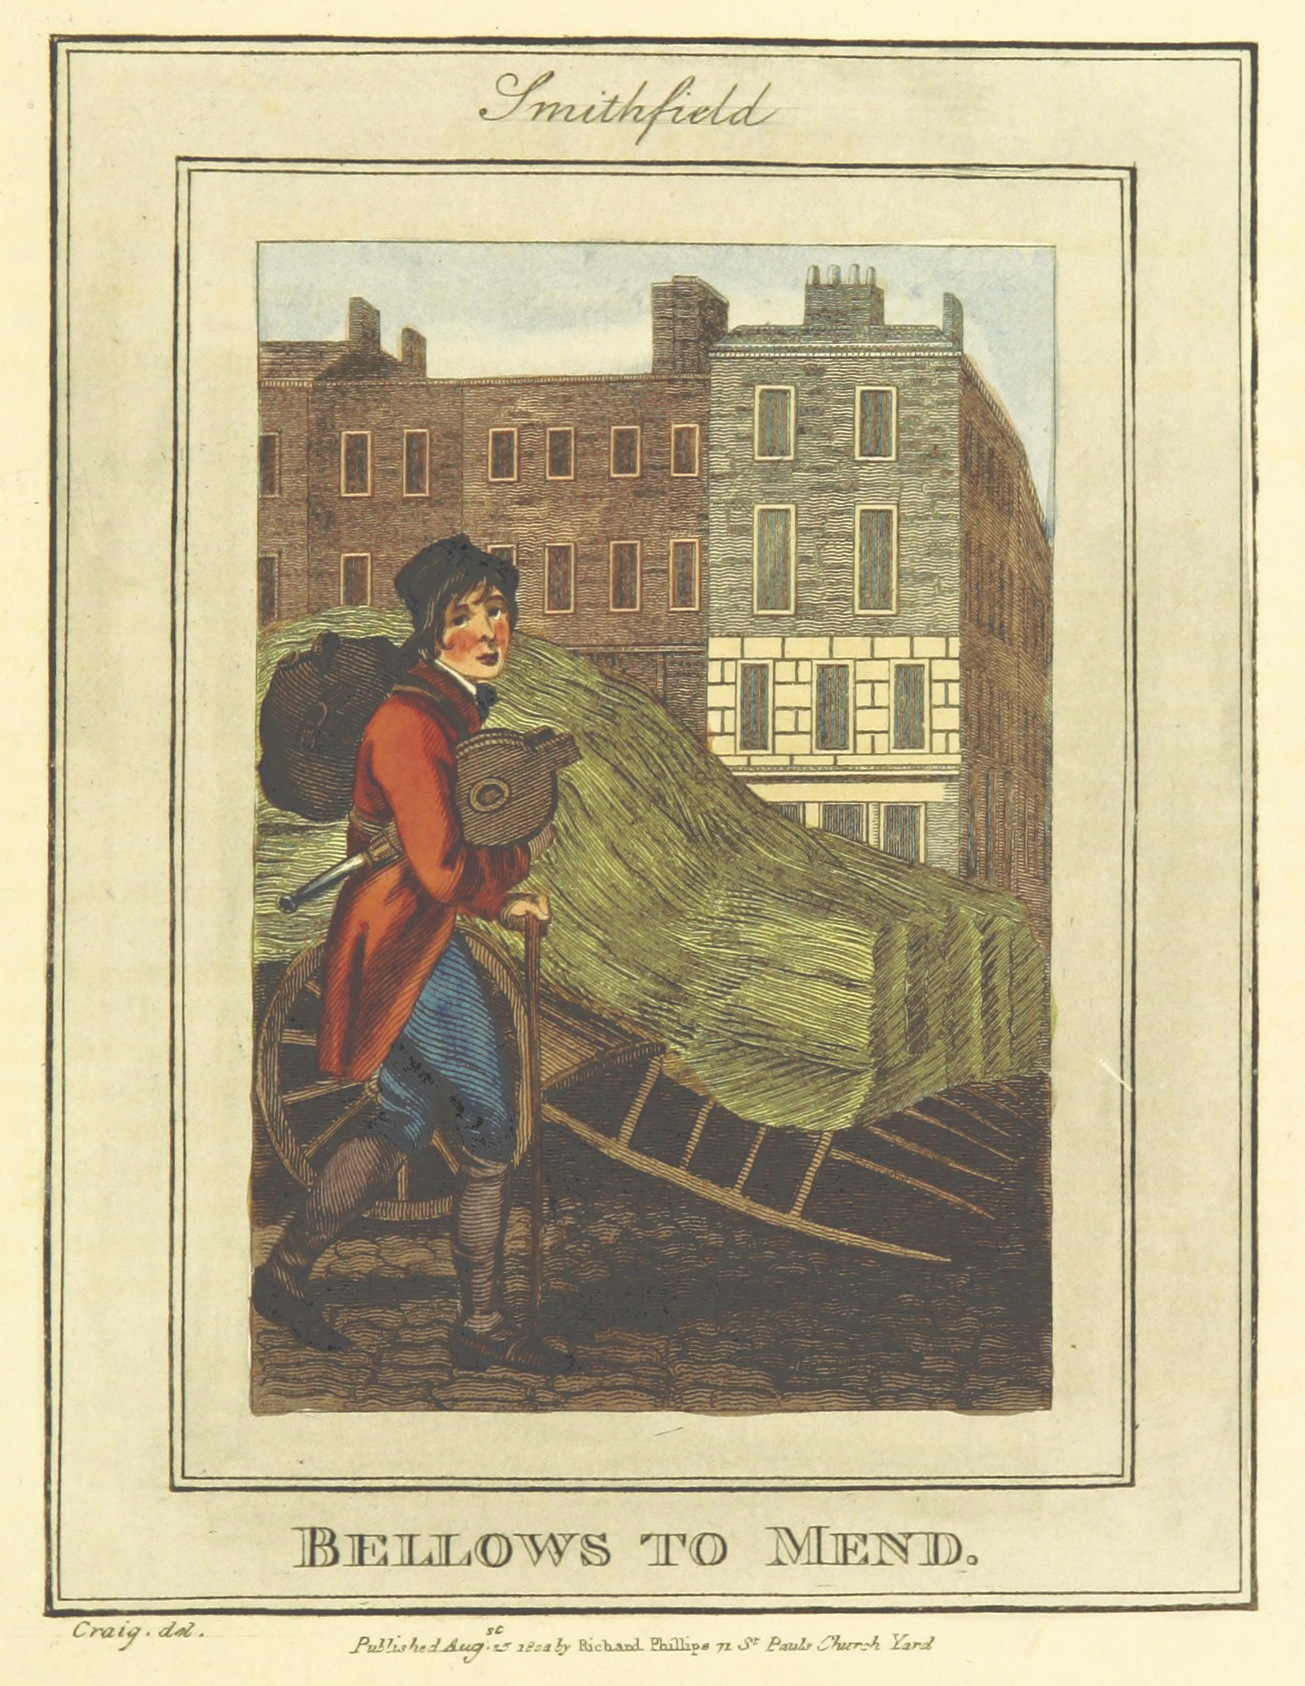 Phillips(1804)_p565_-_Smithfield_-_Bellows_to_Mend